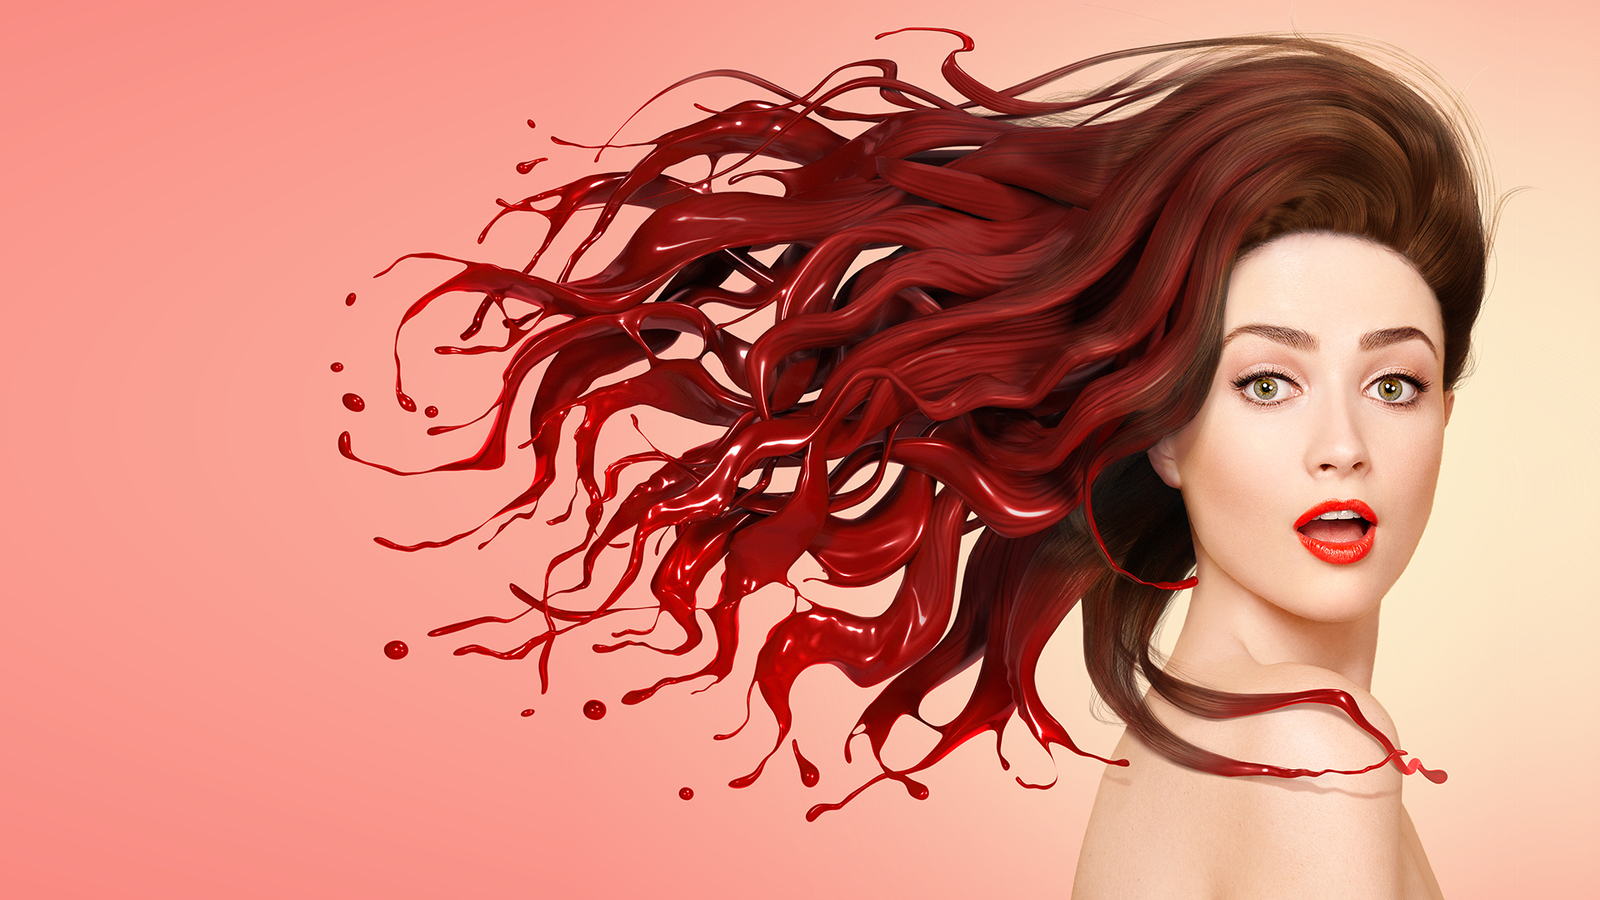 full bleed render of La Perruuque Puissante, showing model in pin up style with hair transforming into red paint